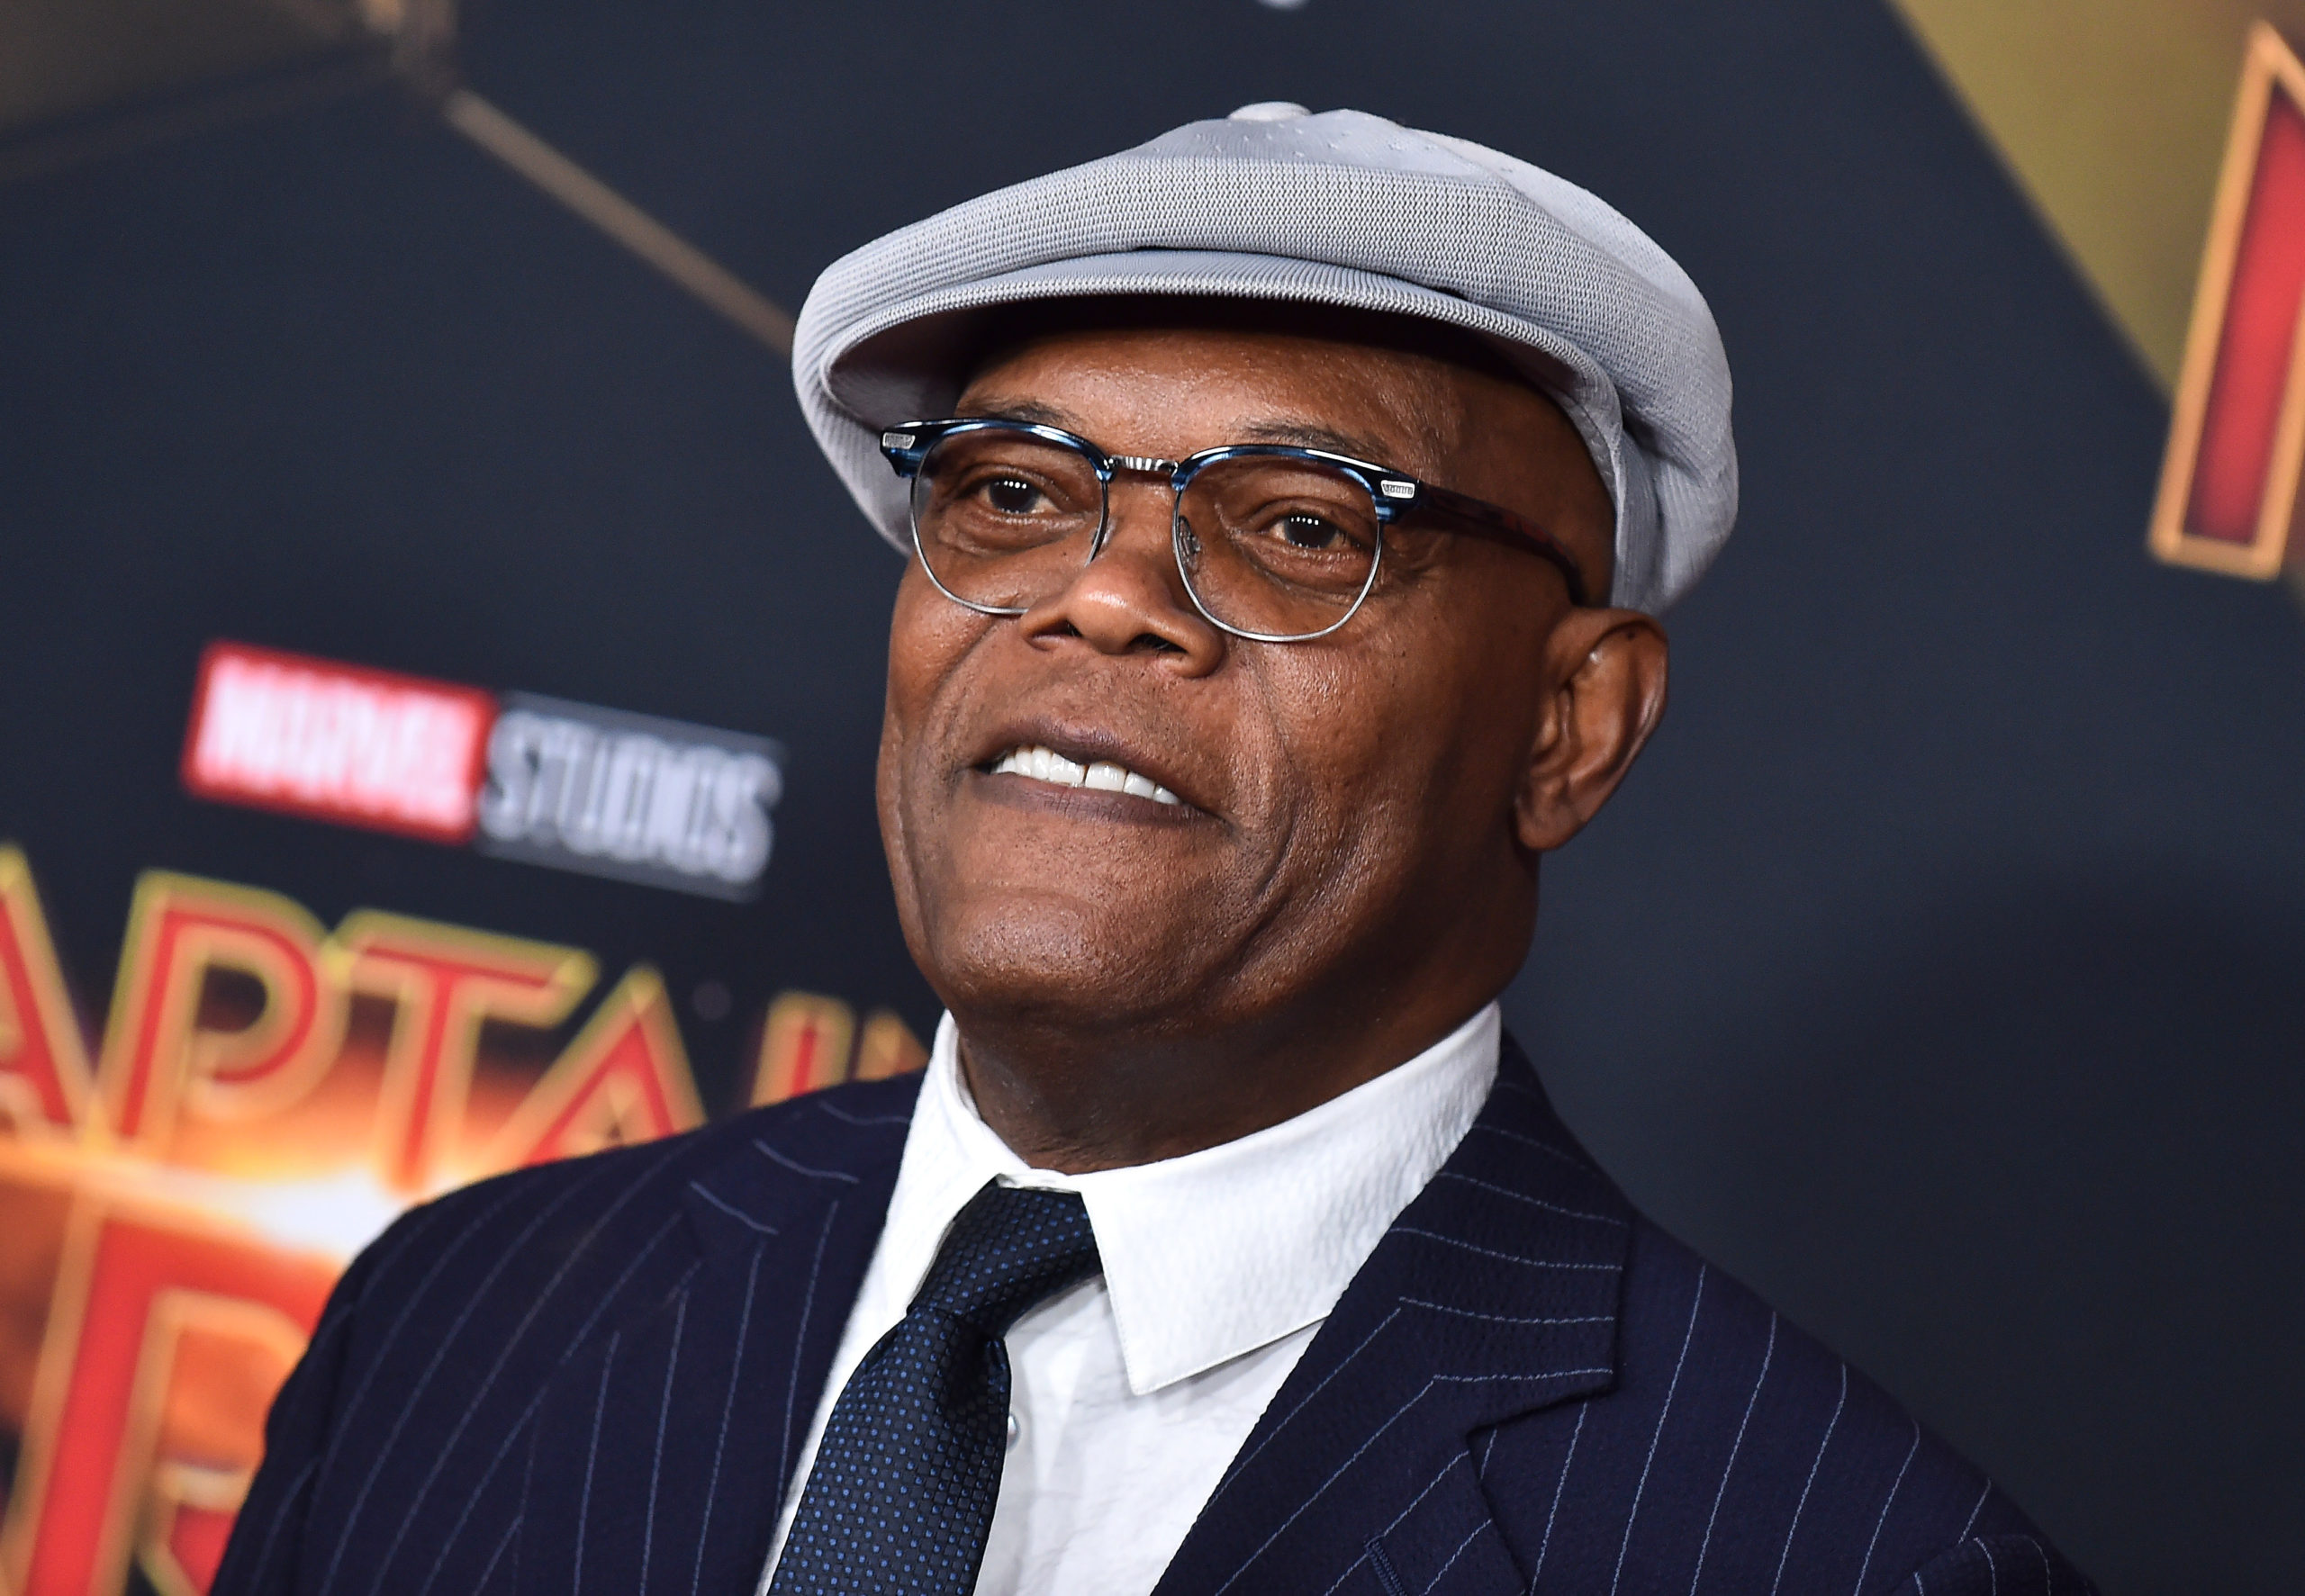 Samuel L. Jackson Will Teach You To Swear in Multiple Languages if You Vote